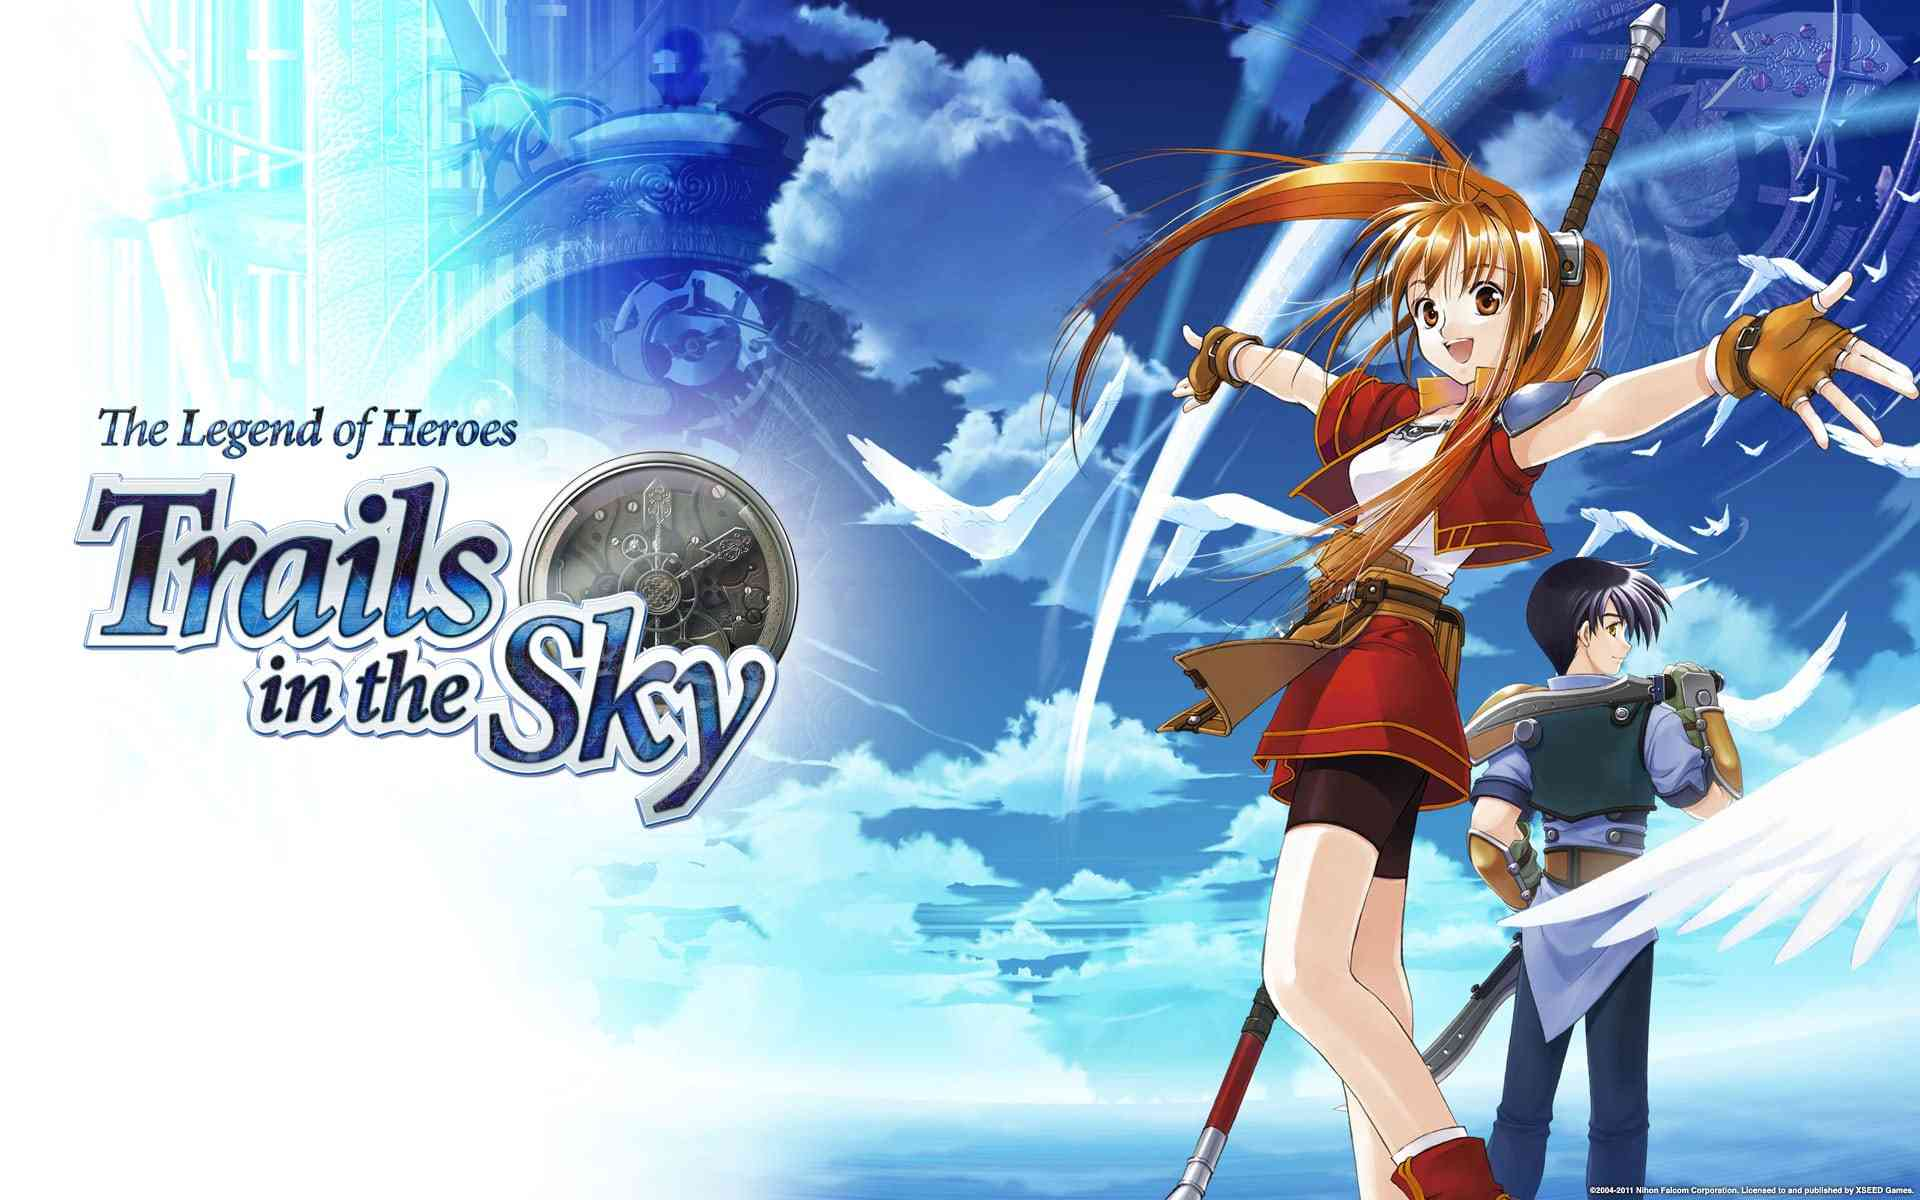 http://canadianonlinegamers.com/wp-content/uploads/2013/09/Trails-in-the-Sky-generic-pic-for-articles.jpg